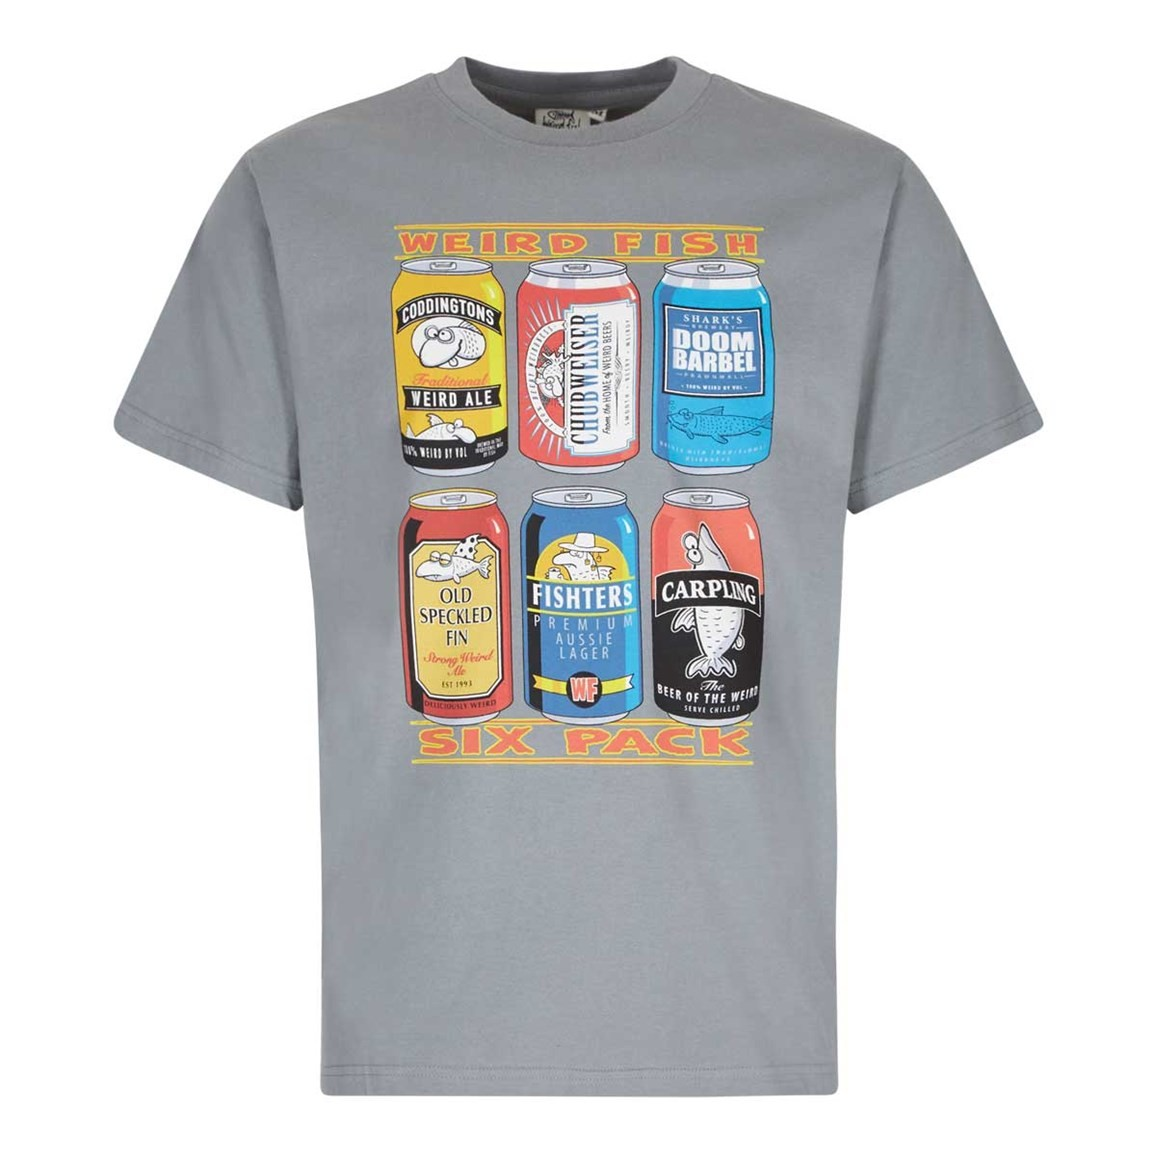 Image of Weird Fish 6 Pack Beer Cans Artist T-Shirt Grey Blue Size 2XL